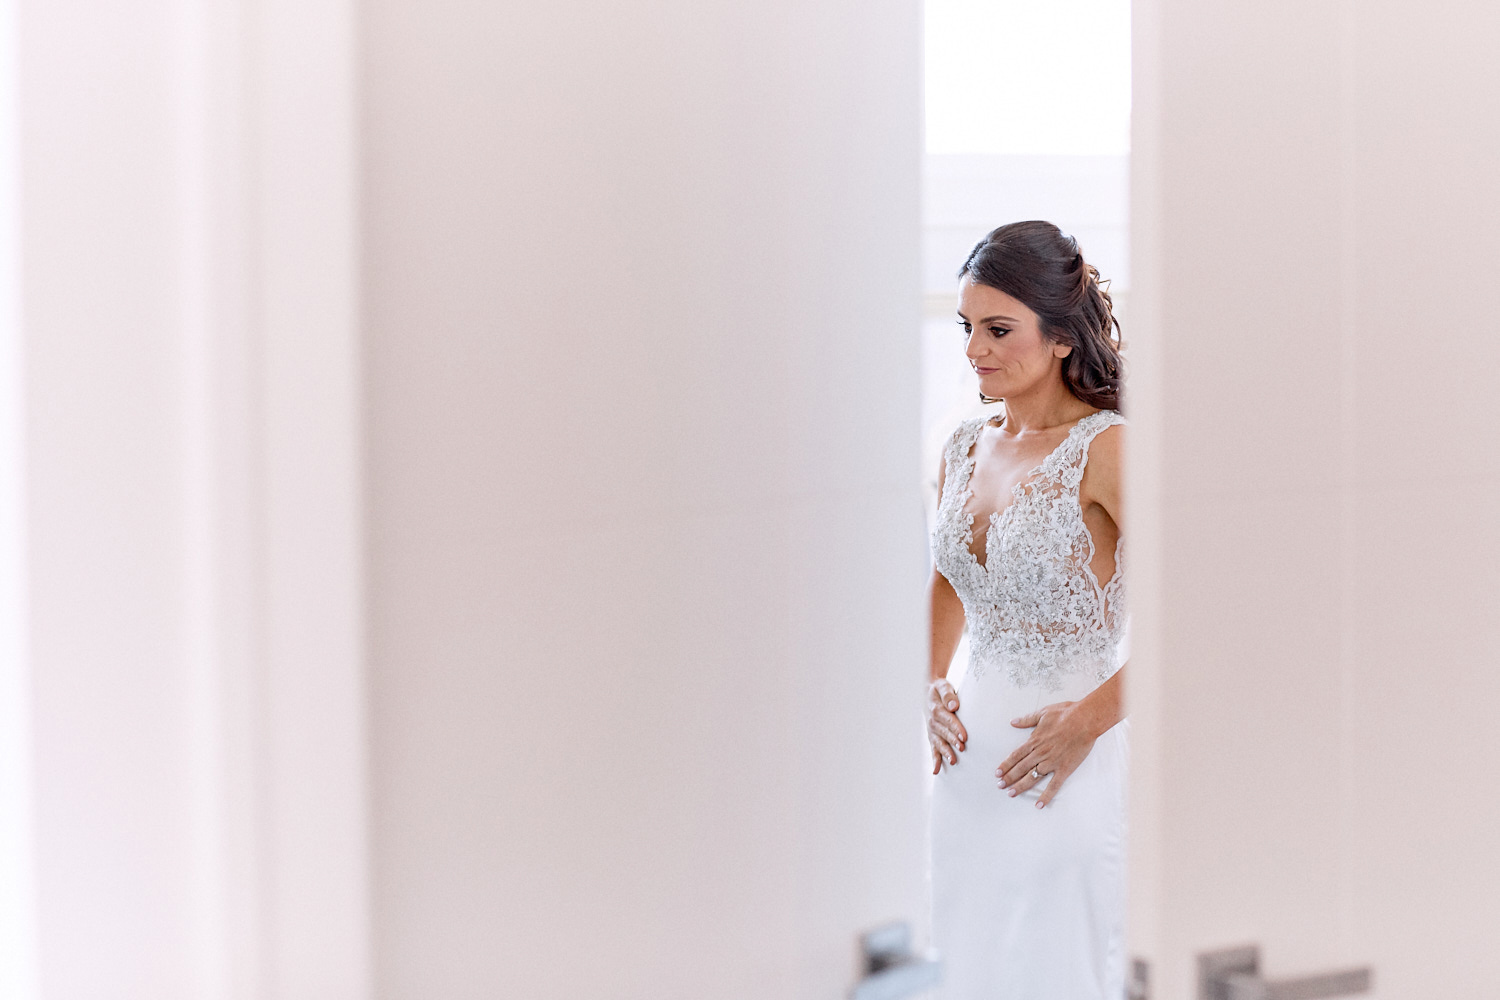 View of bride dressing through door by Blue Mountains wedding photographer Joshua Witheford